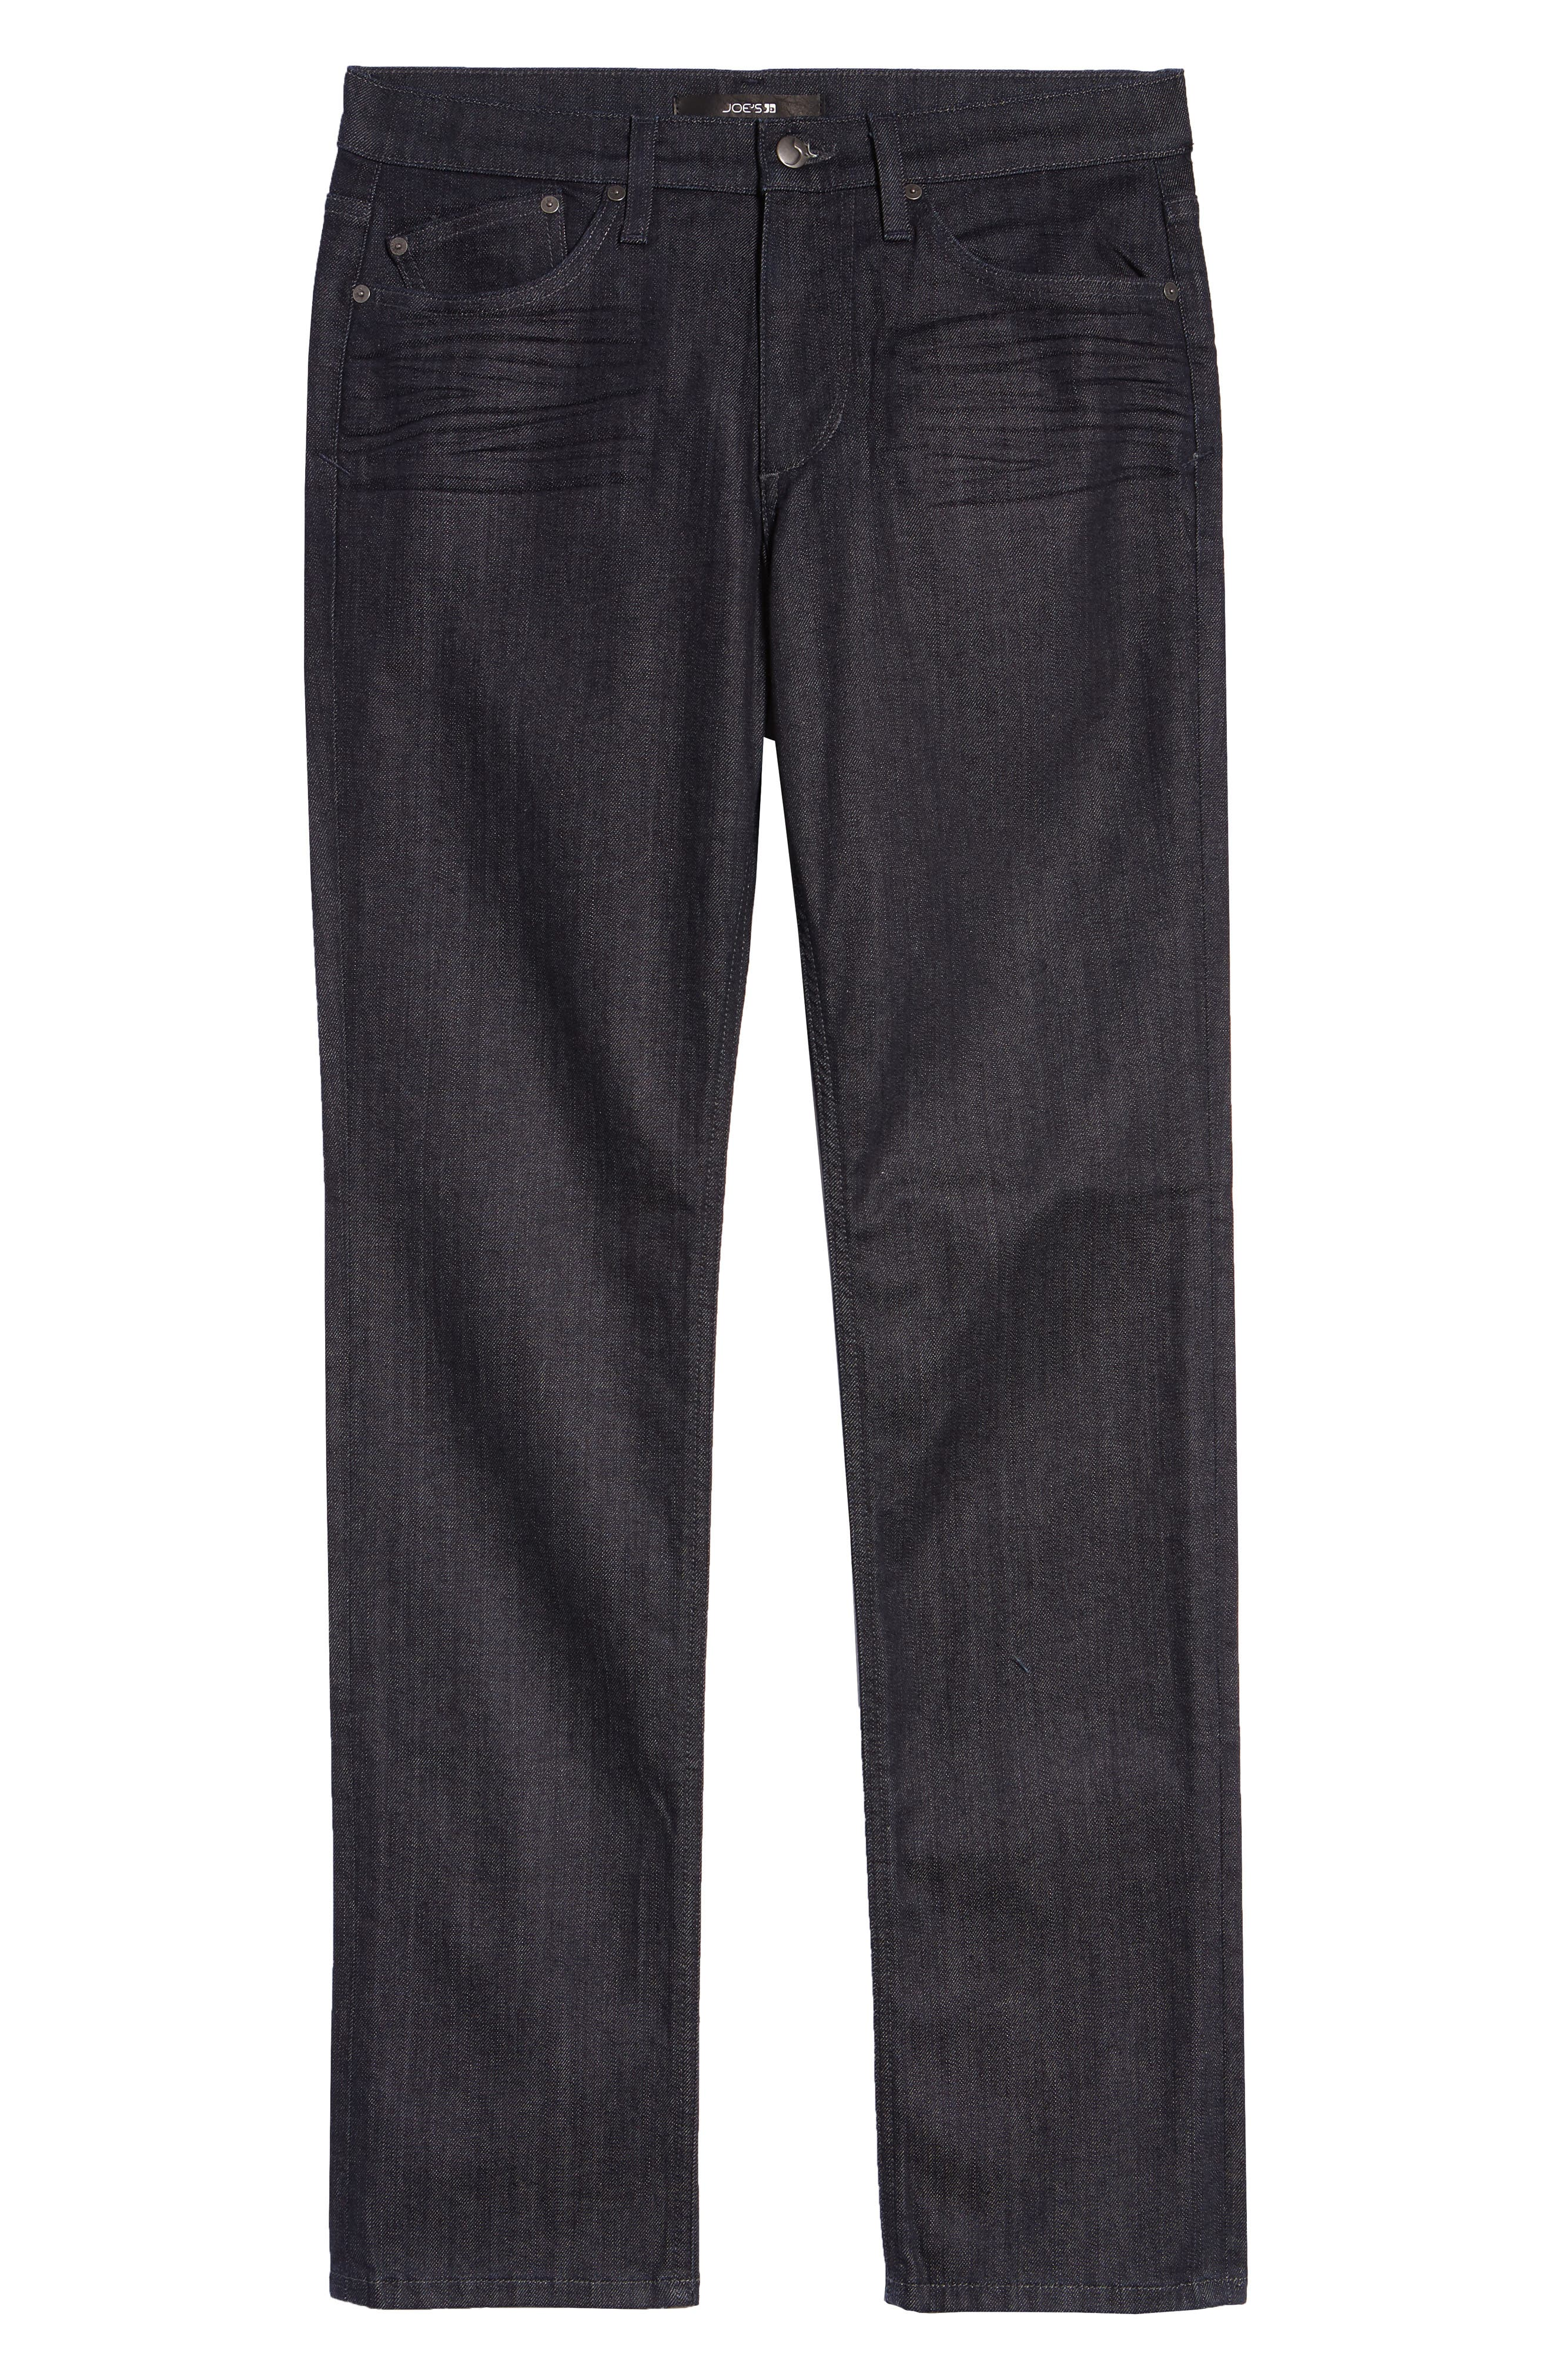 JOE'S, Brixton Slim Straight Fit Jeans, Alternate thumbnail 2, color, KING